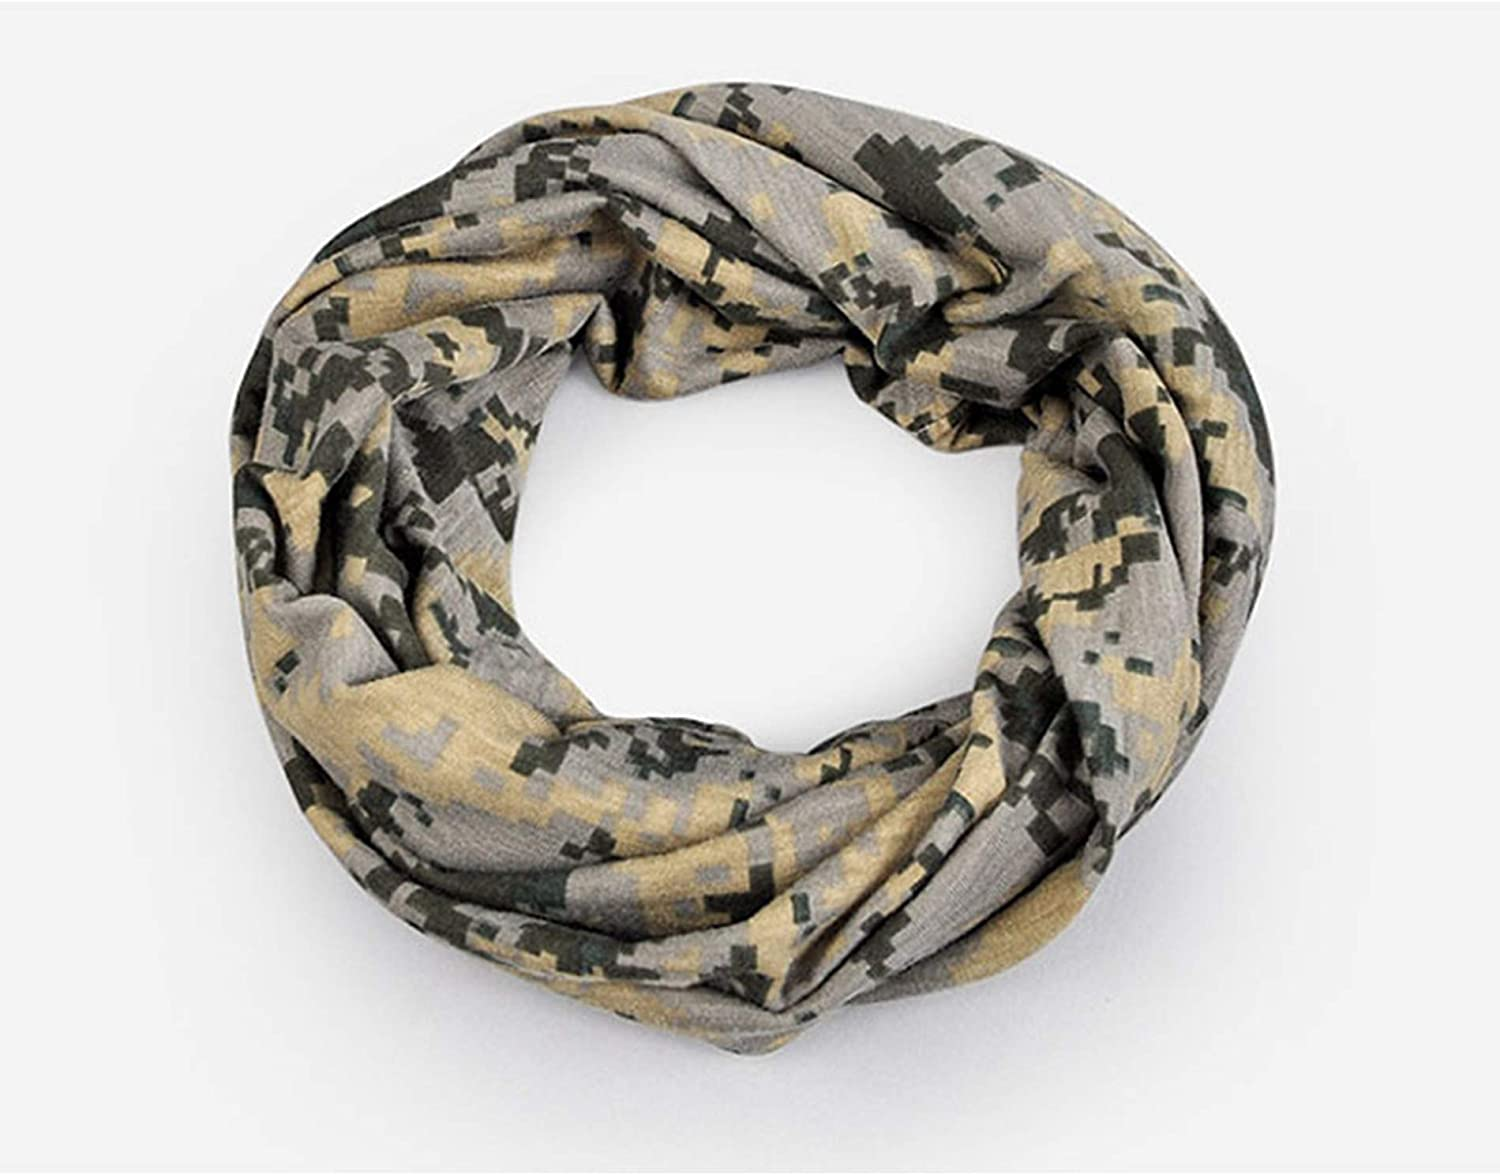 JHKSO Men Winter Casual Beanies Hat Military Army Camouflage Thin Cotton Skull Cap Scarf Camo Autumn Unisex